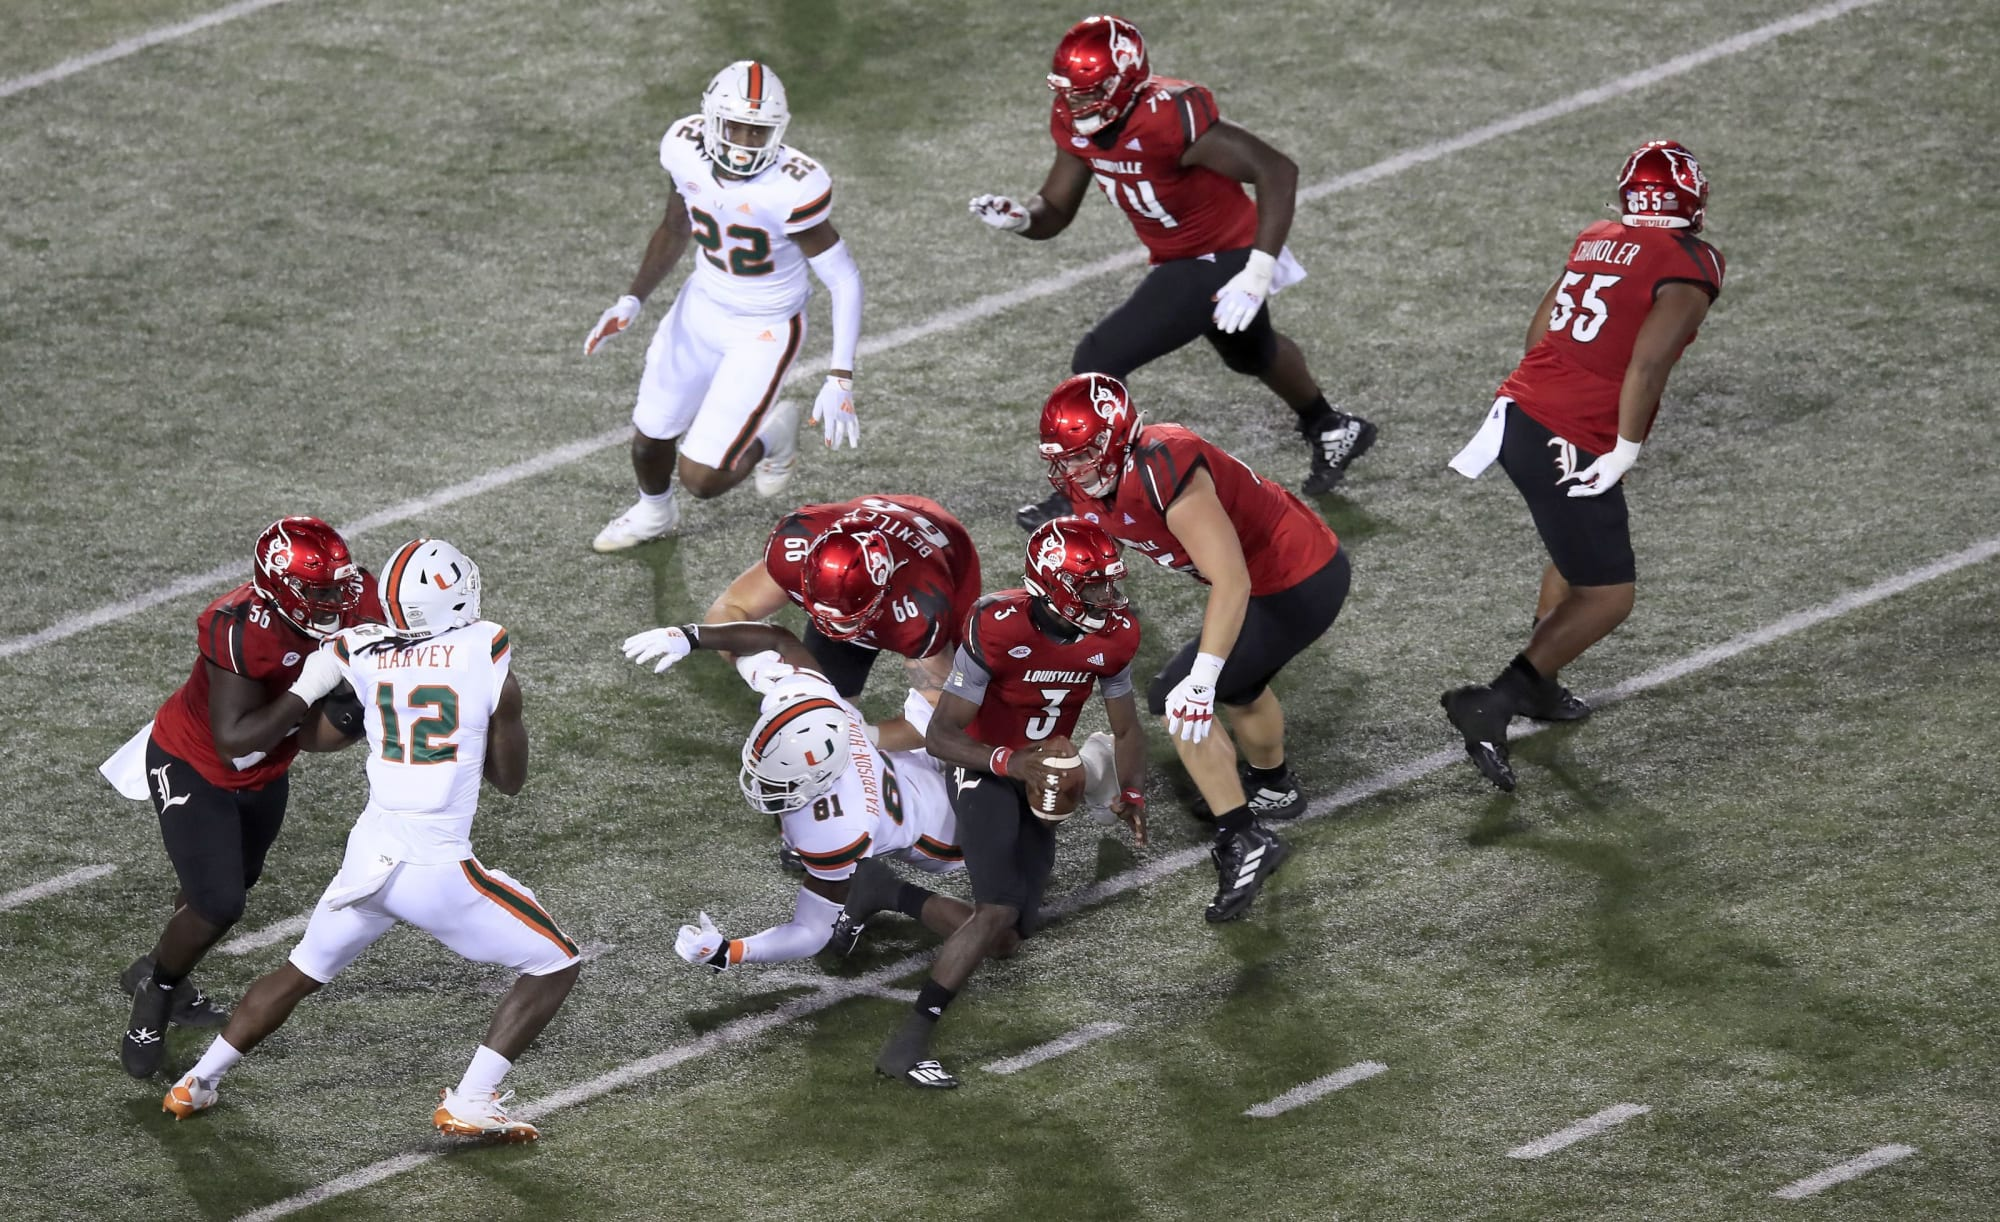 Miami football top 5 for 3-star OT Leyton Nelson with July 4 commitment date